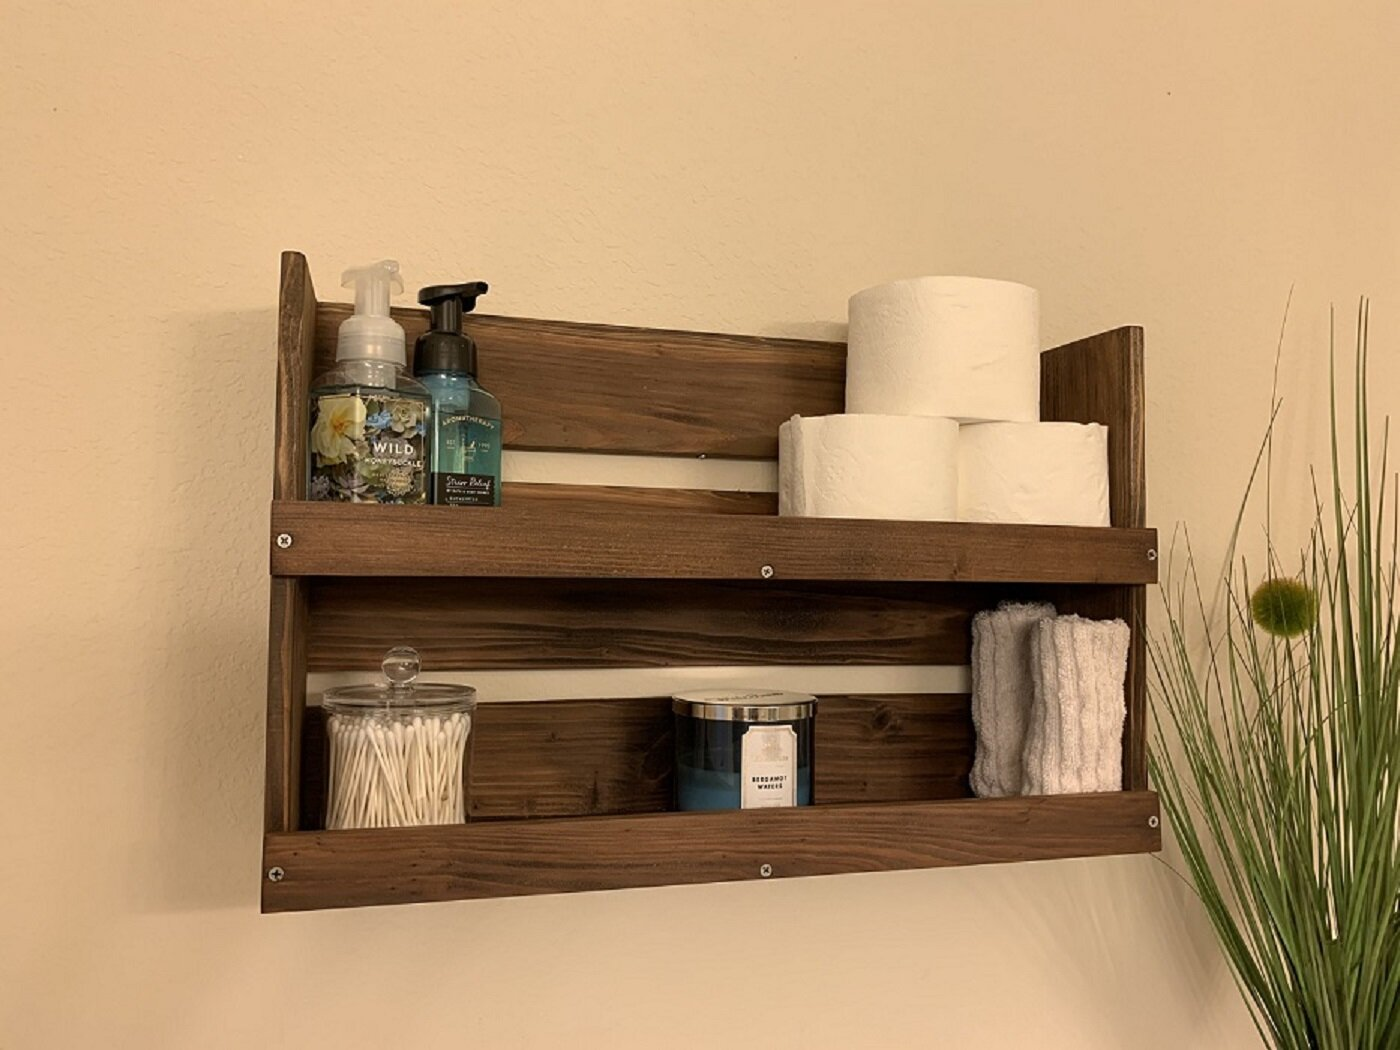 Union Rustic Federico 23 5 W X 15 H X 6 D Solid Wood Bathroom Shelves Reviews Wayfair